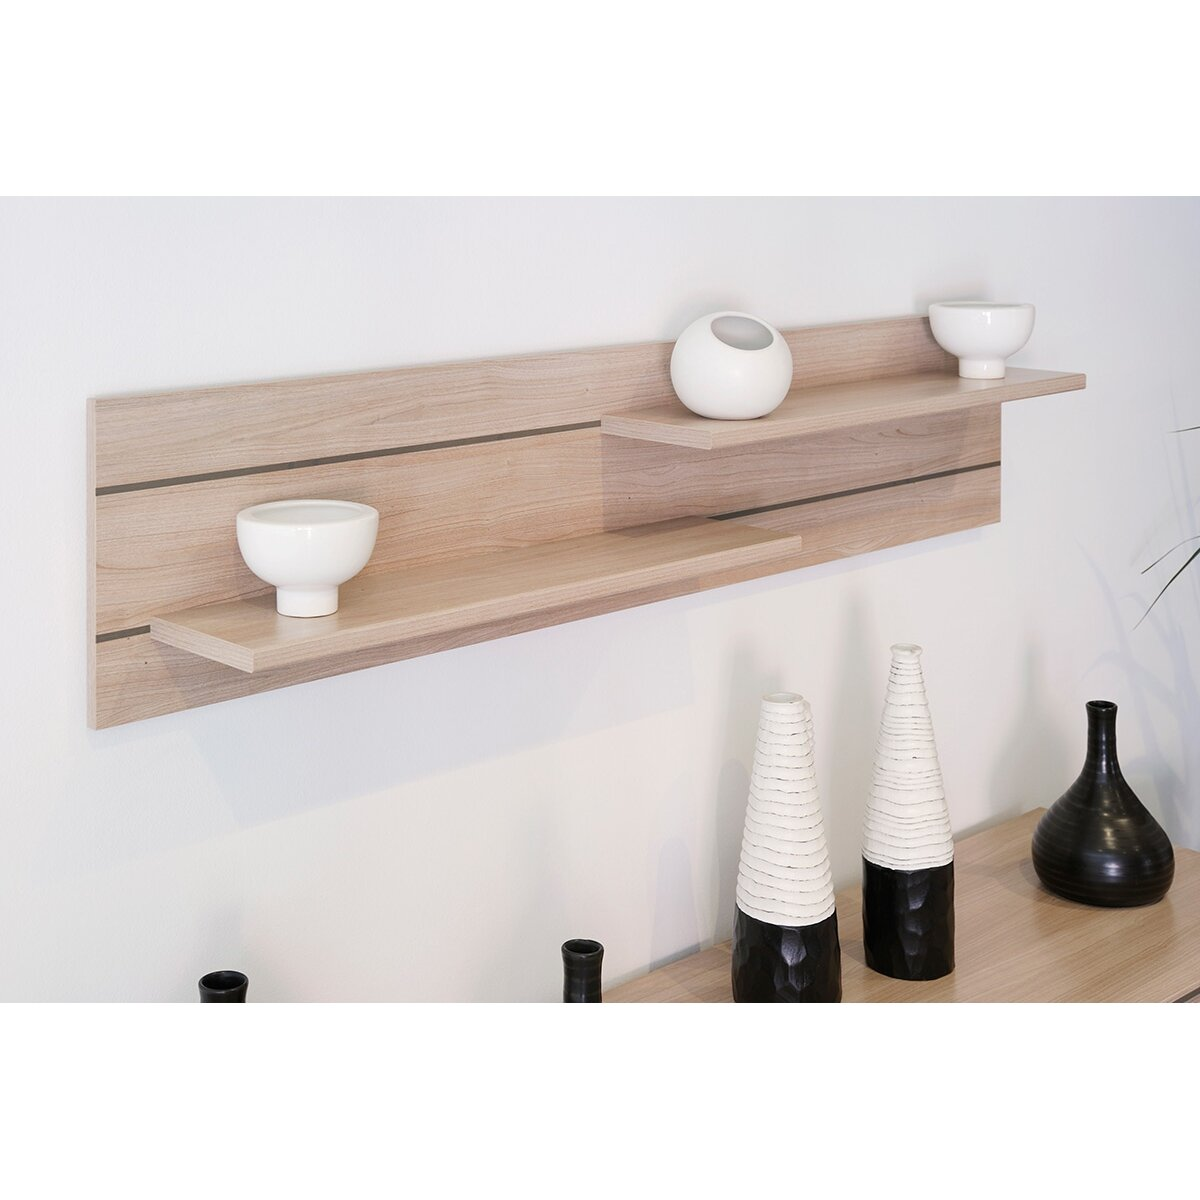 Parisot nolita wall shelf reviews wayfair for Decoration murale wayfair